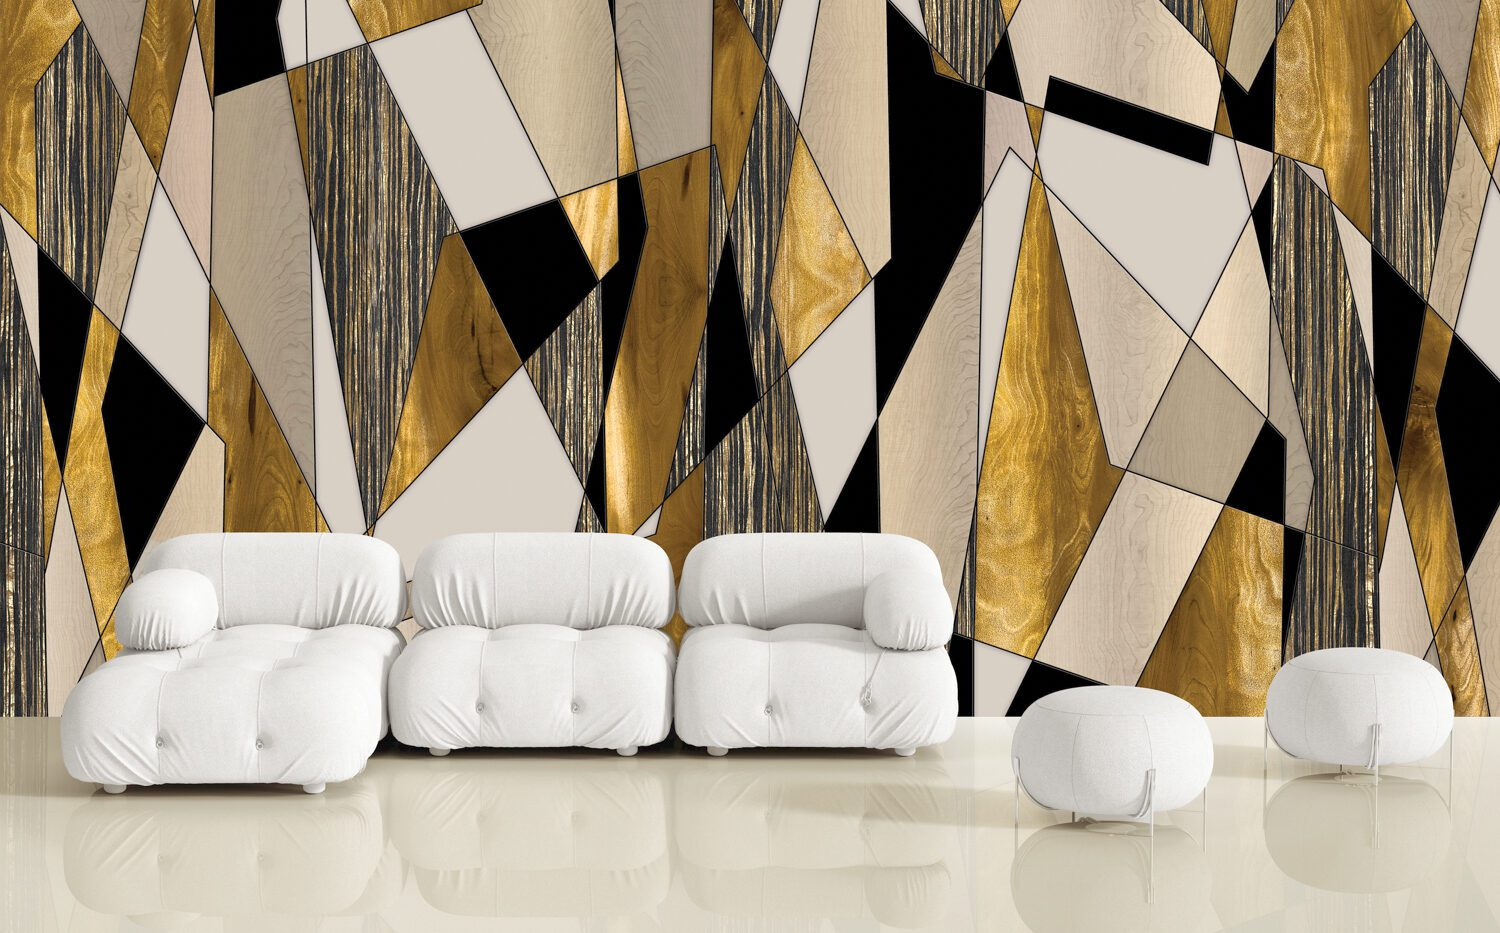 Patty Madden's Zeebo Wood Shard bleach-cleanable wall covering in digitally printed Type II vinyl Mylar by Luxe Surfaces.